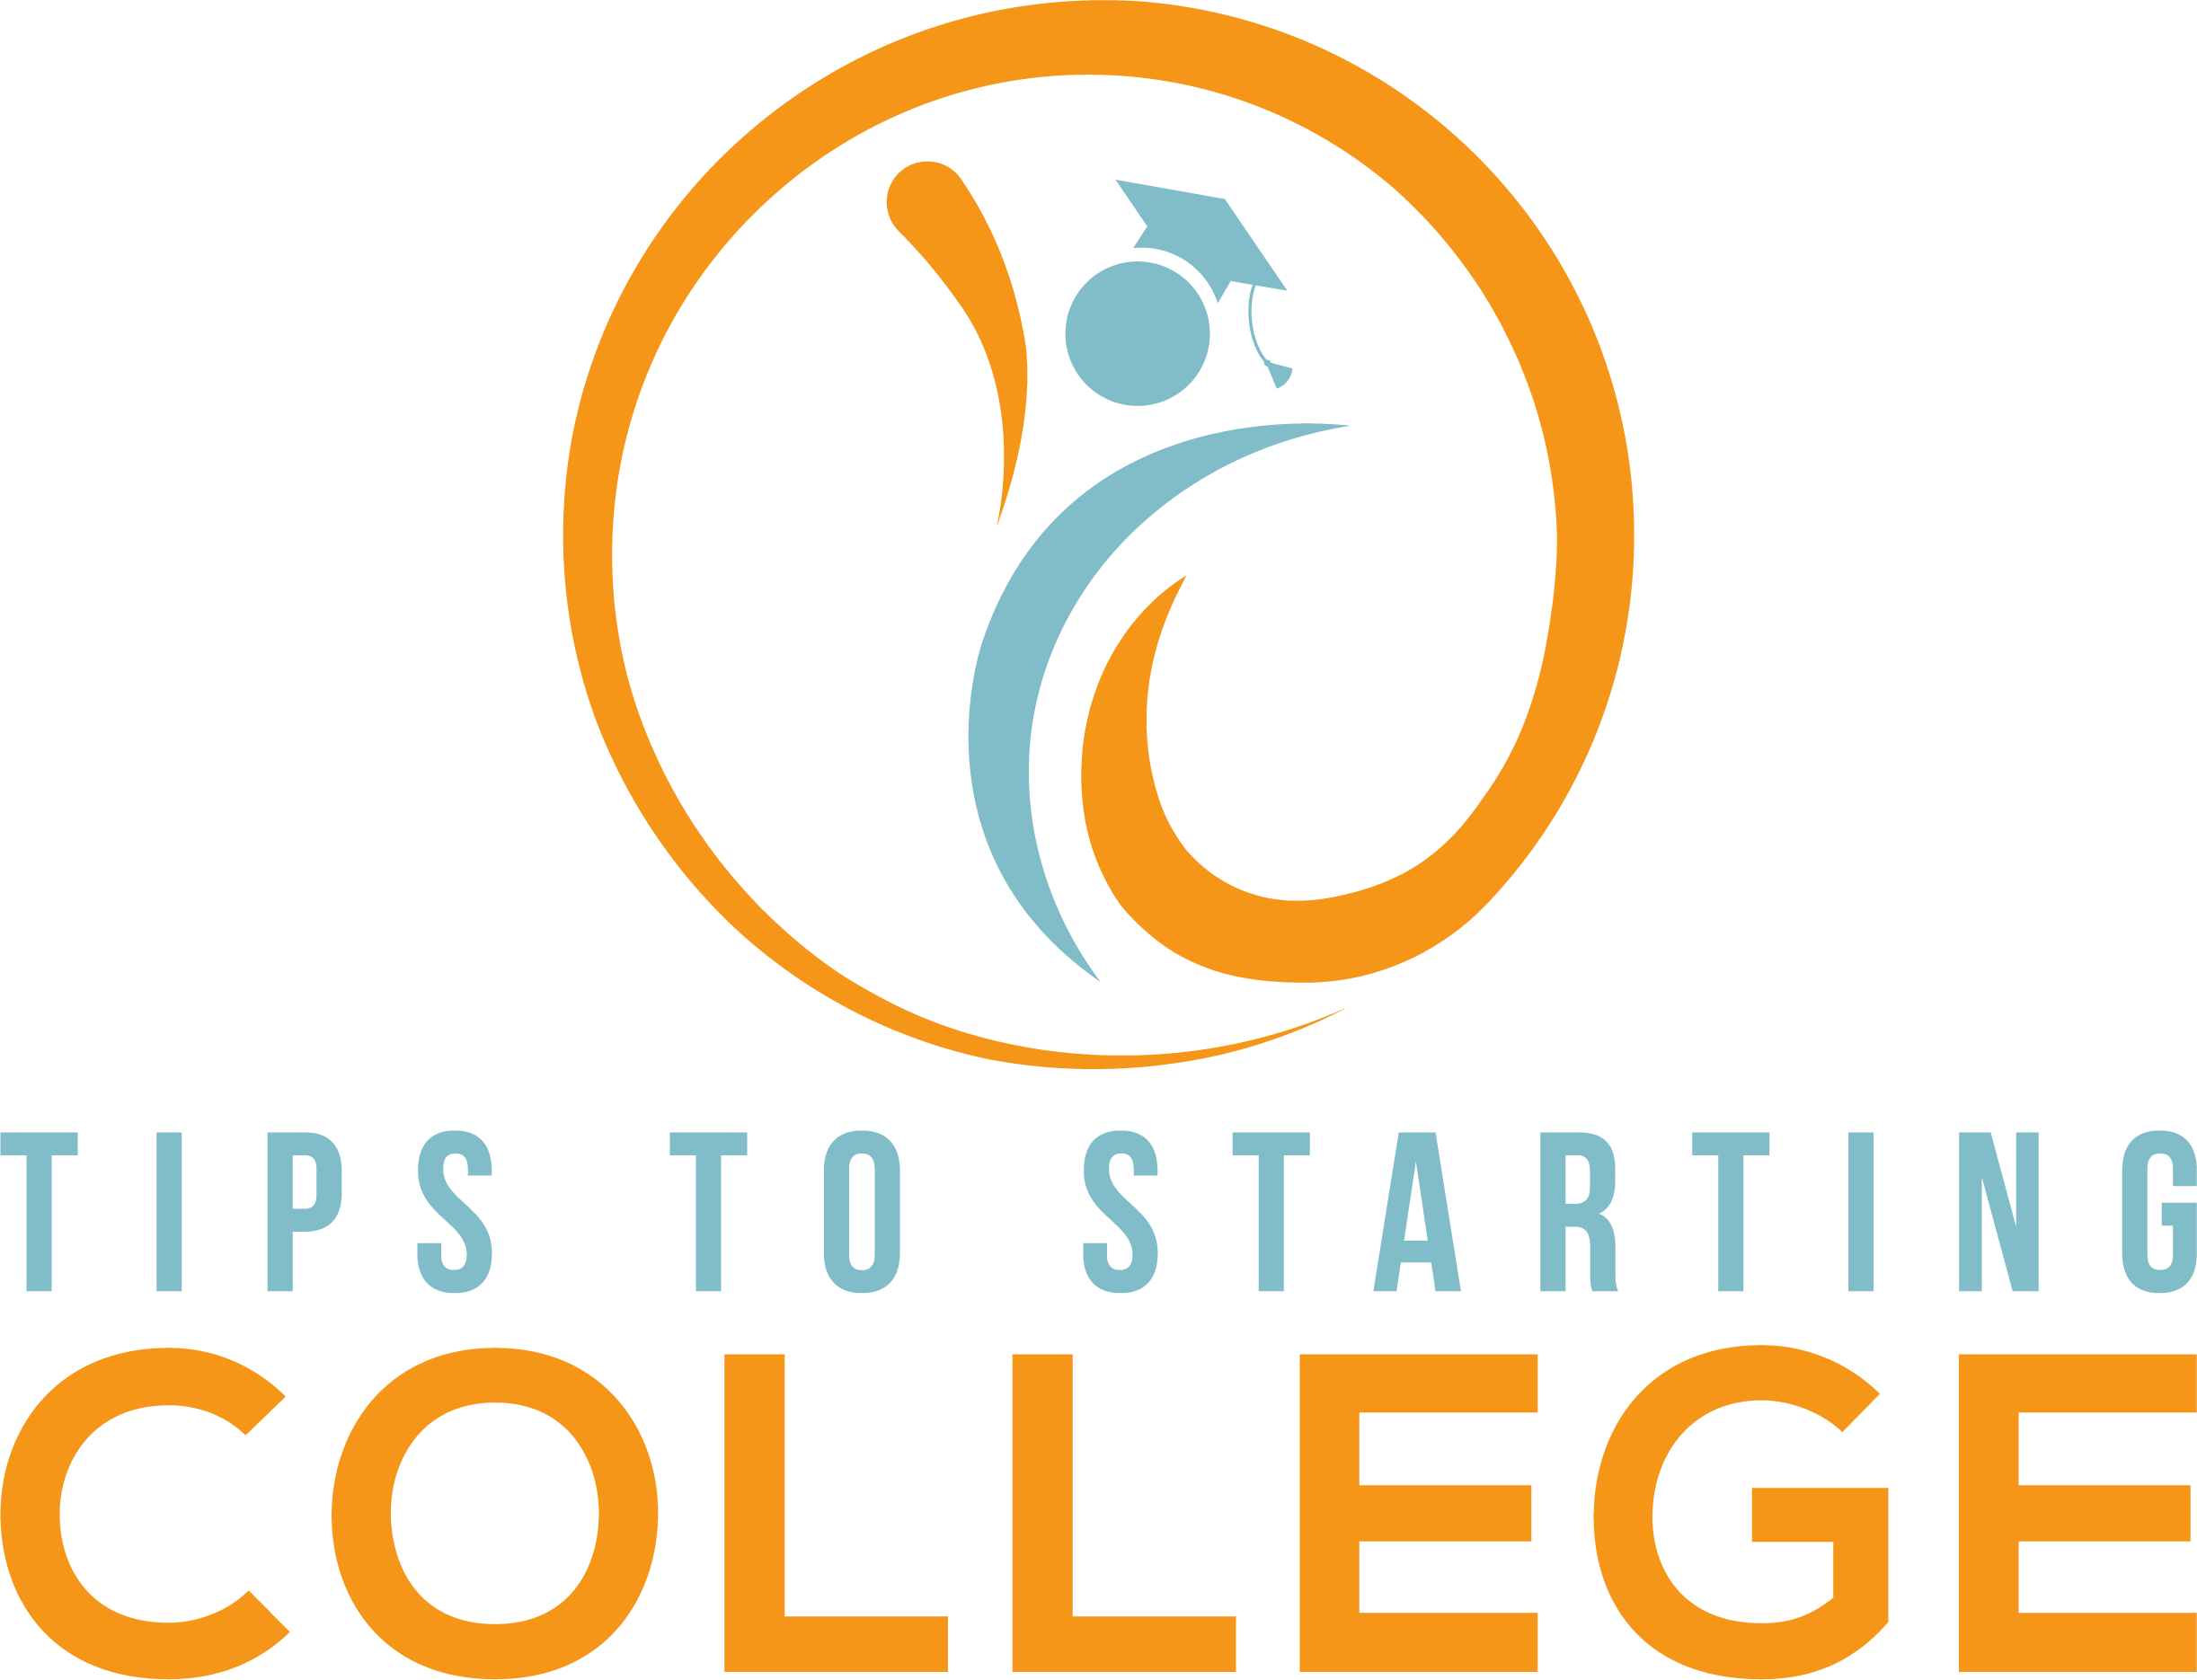 Tips to Starting College